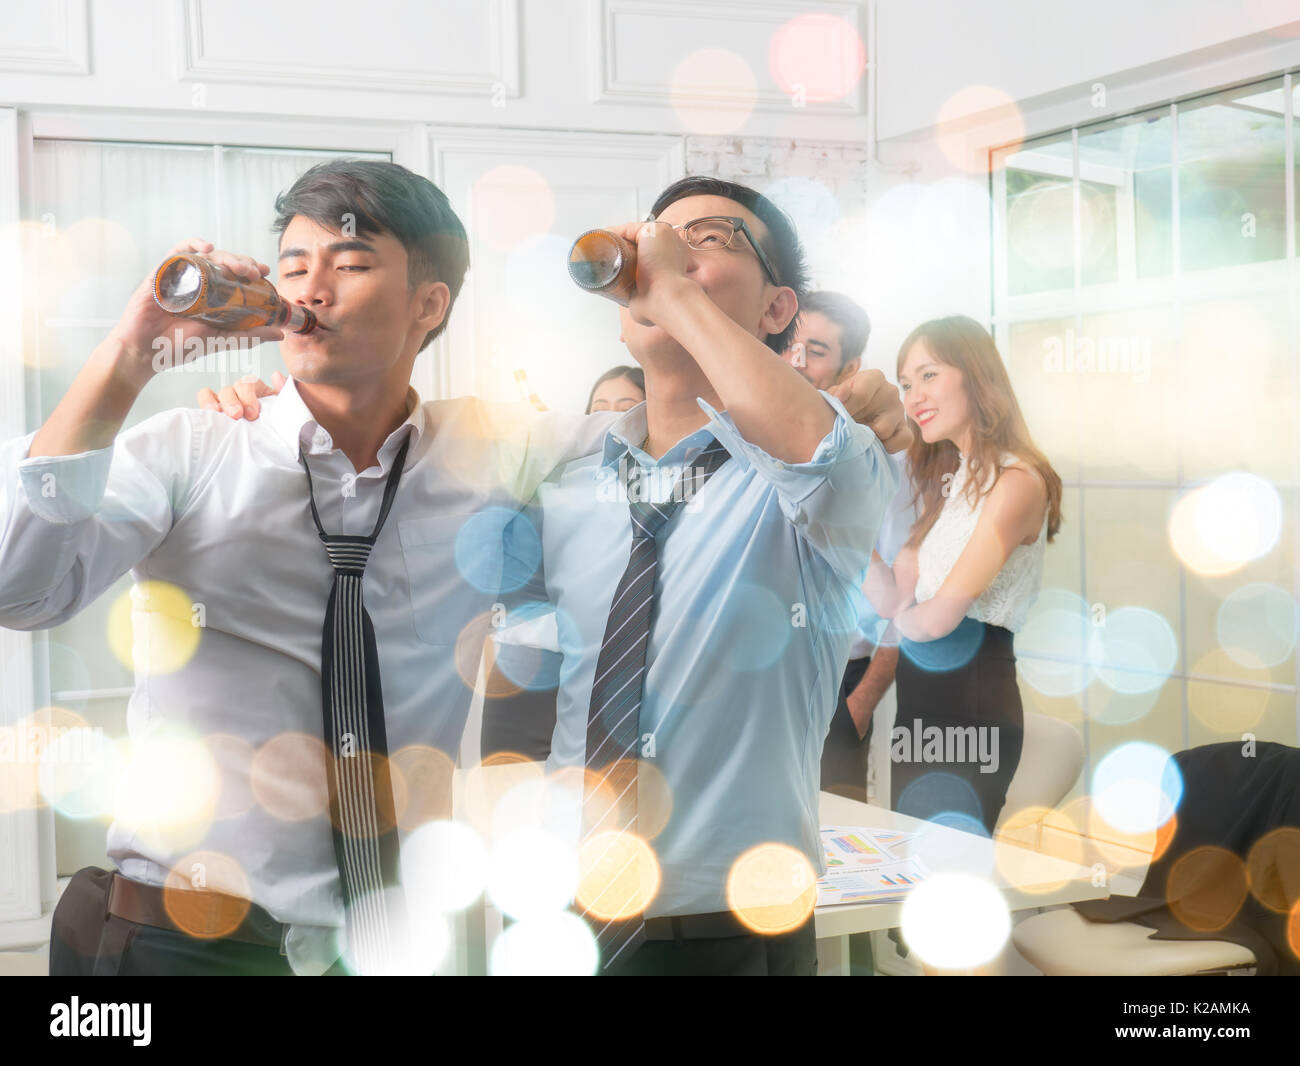 Businessmen are celebrating. After the big project succeeded. On blurred bokeh background - Stock Image